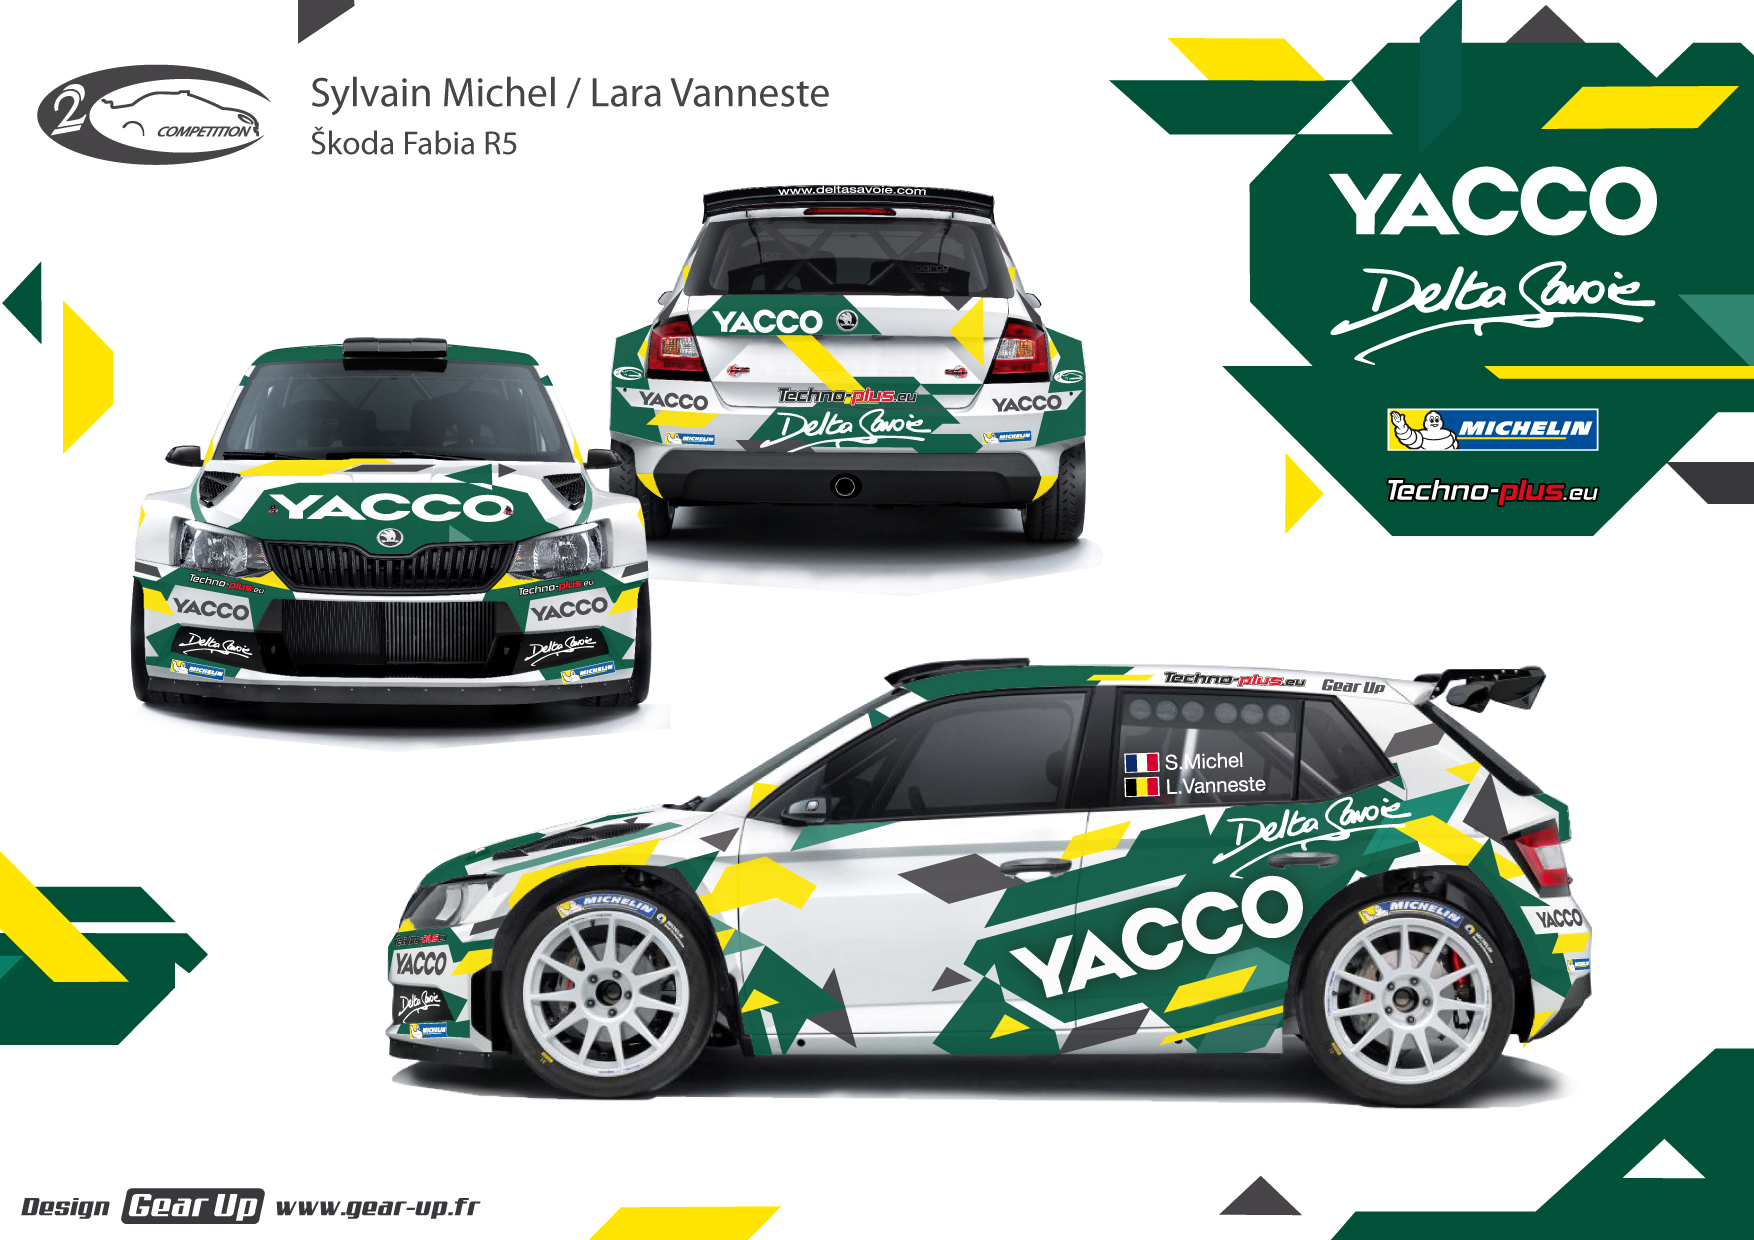 koda fabia r5 sylvain michel championnat de france des rallyes 2016. Black Bedroom Furniture Sets. Home Design Ideas